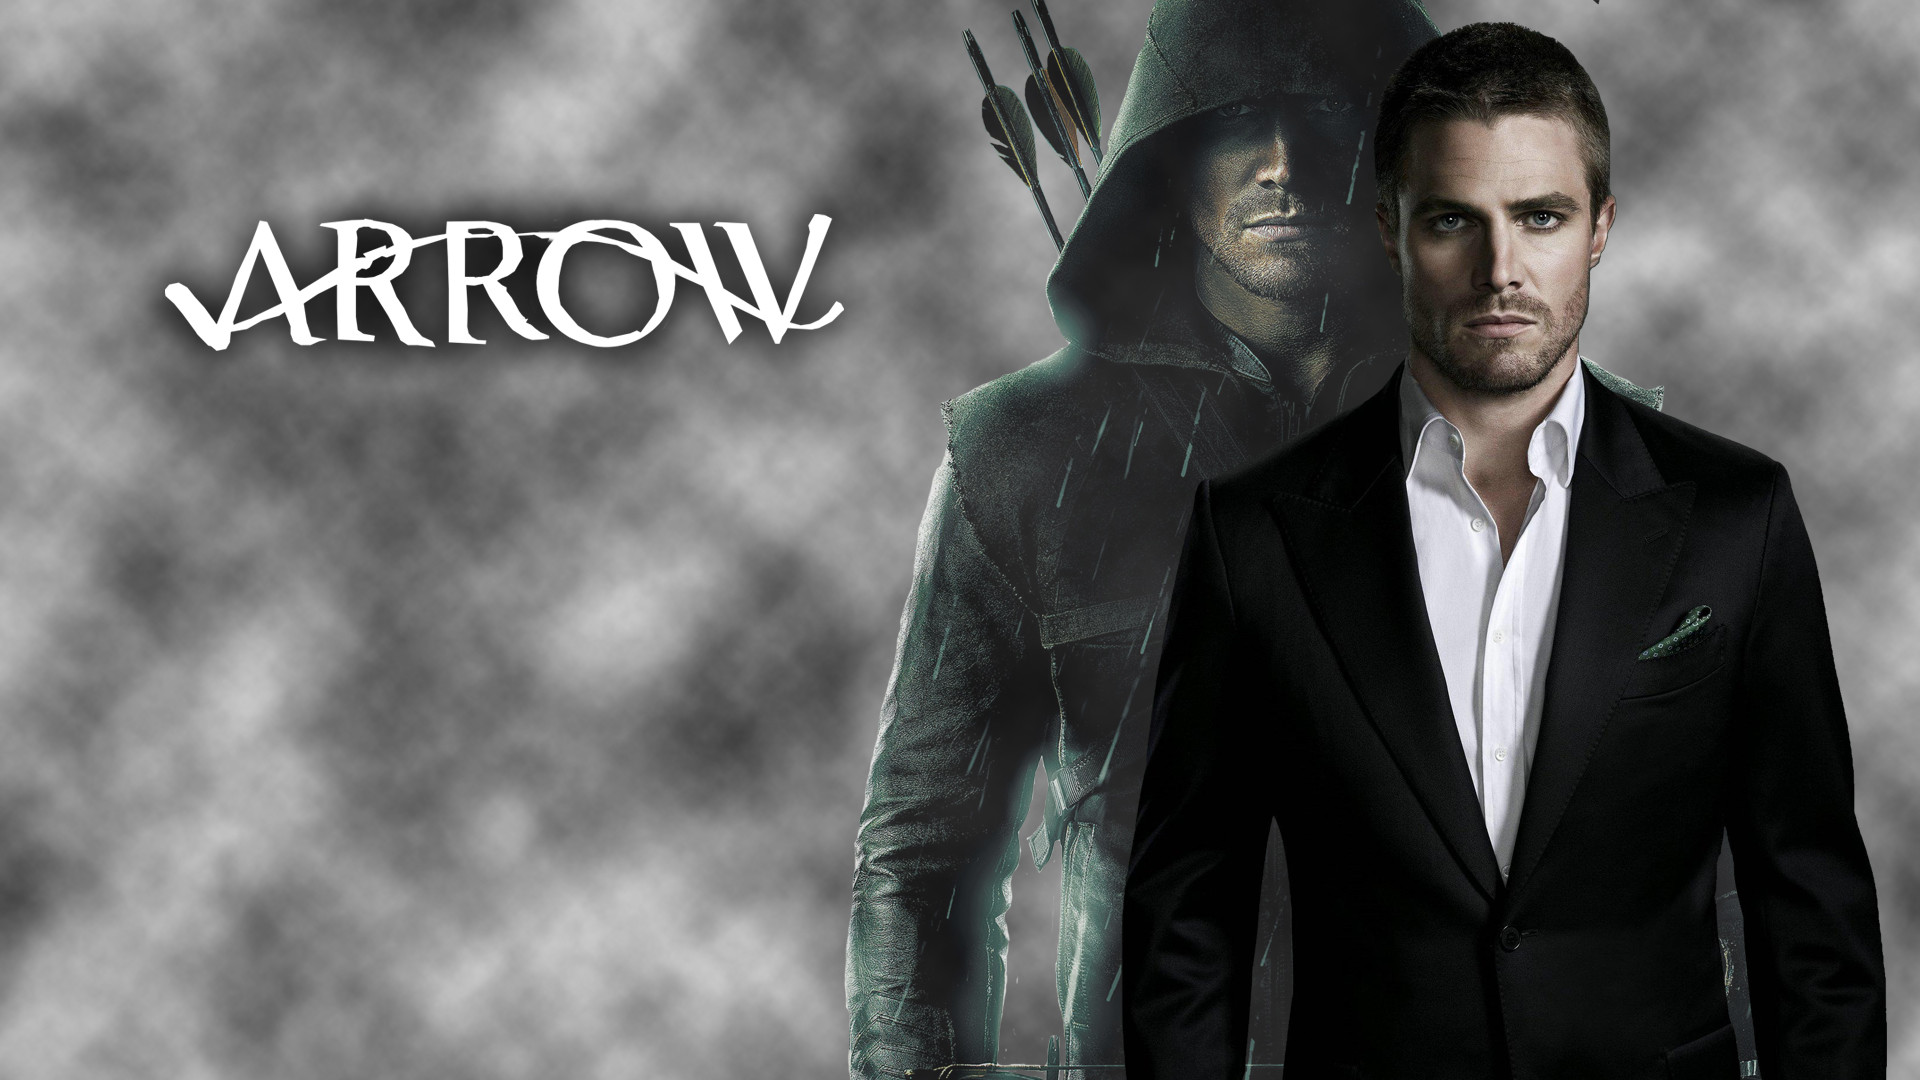 DeviantArt: More Like Oliver Queen/Arrow Wallpaper by .